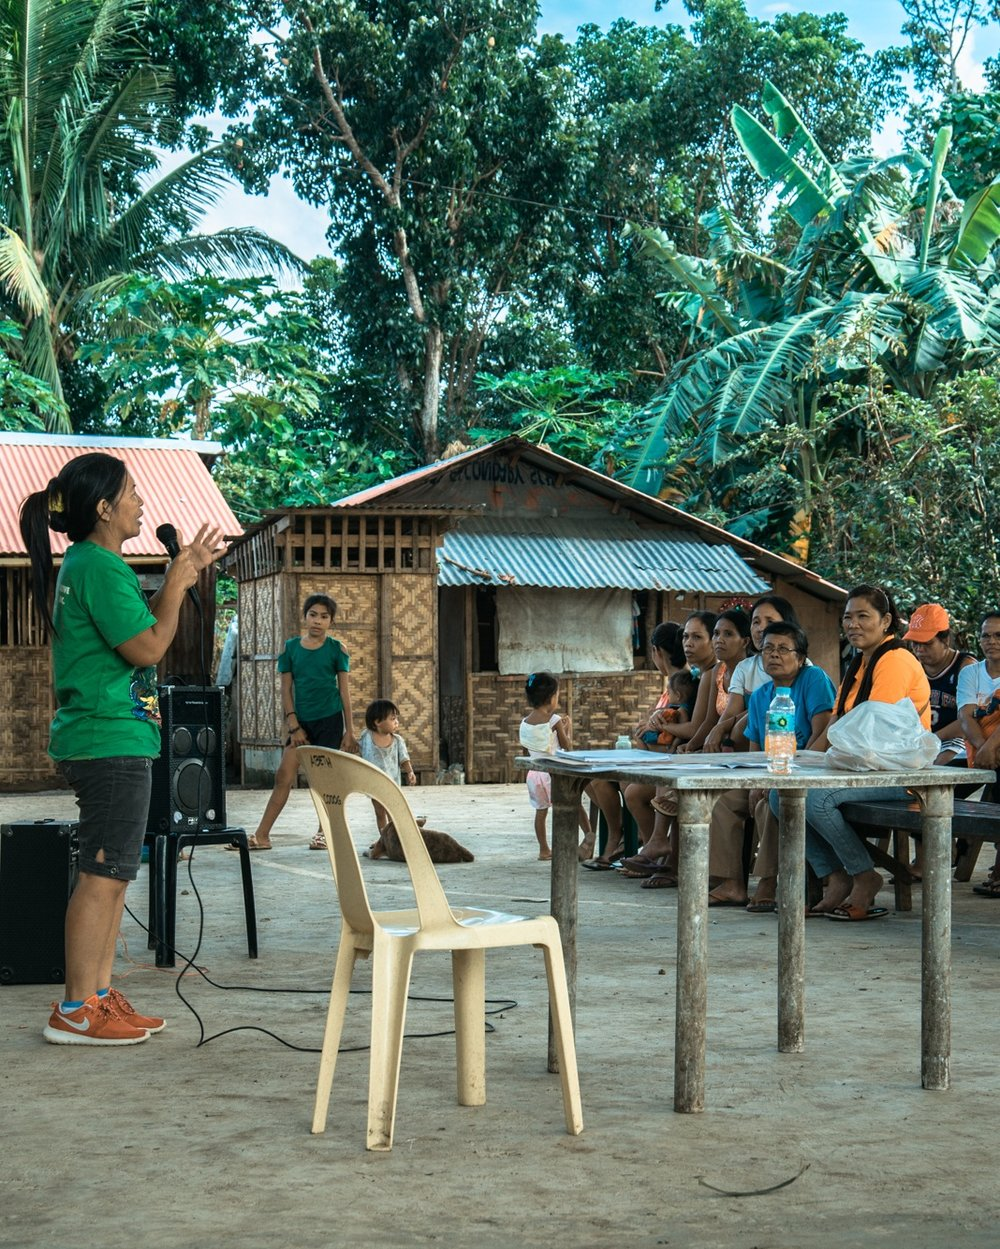 RURAL DEVELOPMENT INITIATIVES (RDI) - As a local NGO based in Ormoc City, RDI is has played an important role in rebuilding communities in the aftermath of several natural disasters. Herunder Super Typhoon Haiyan in 2013. Read more.